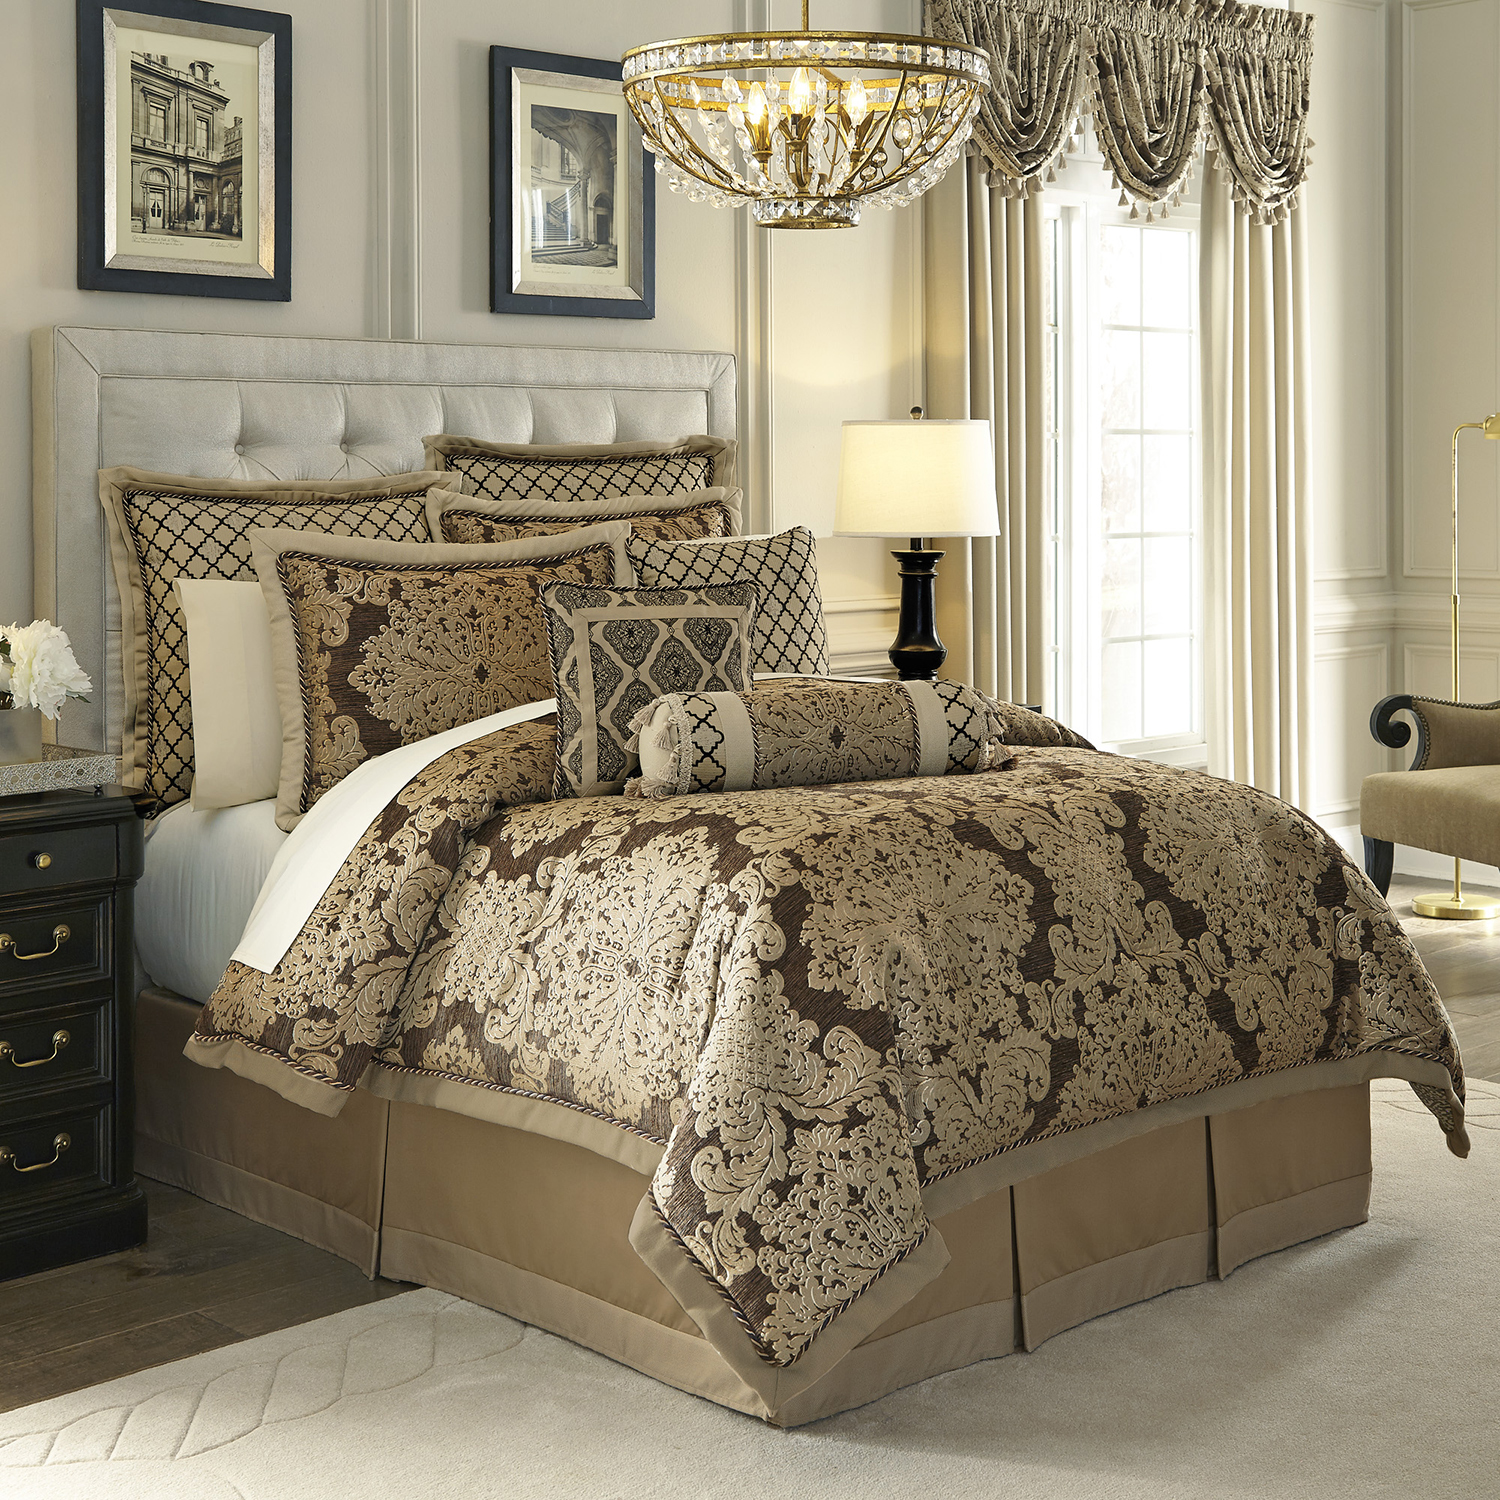 Bedding Decor: Sorina By Croscill Home Fashions